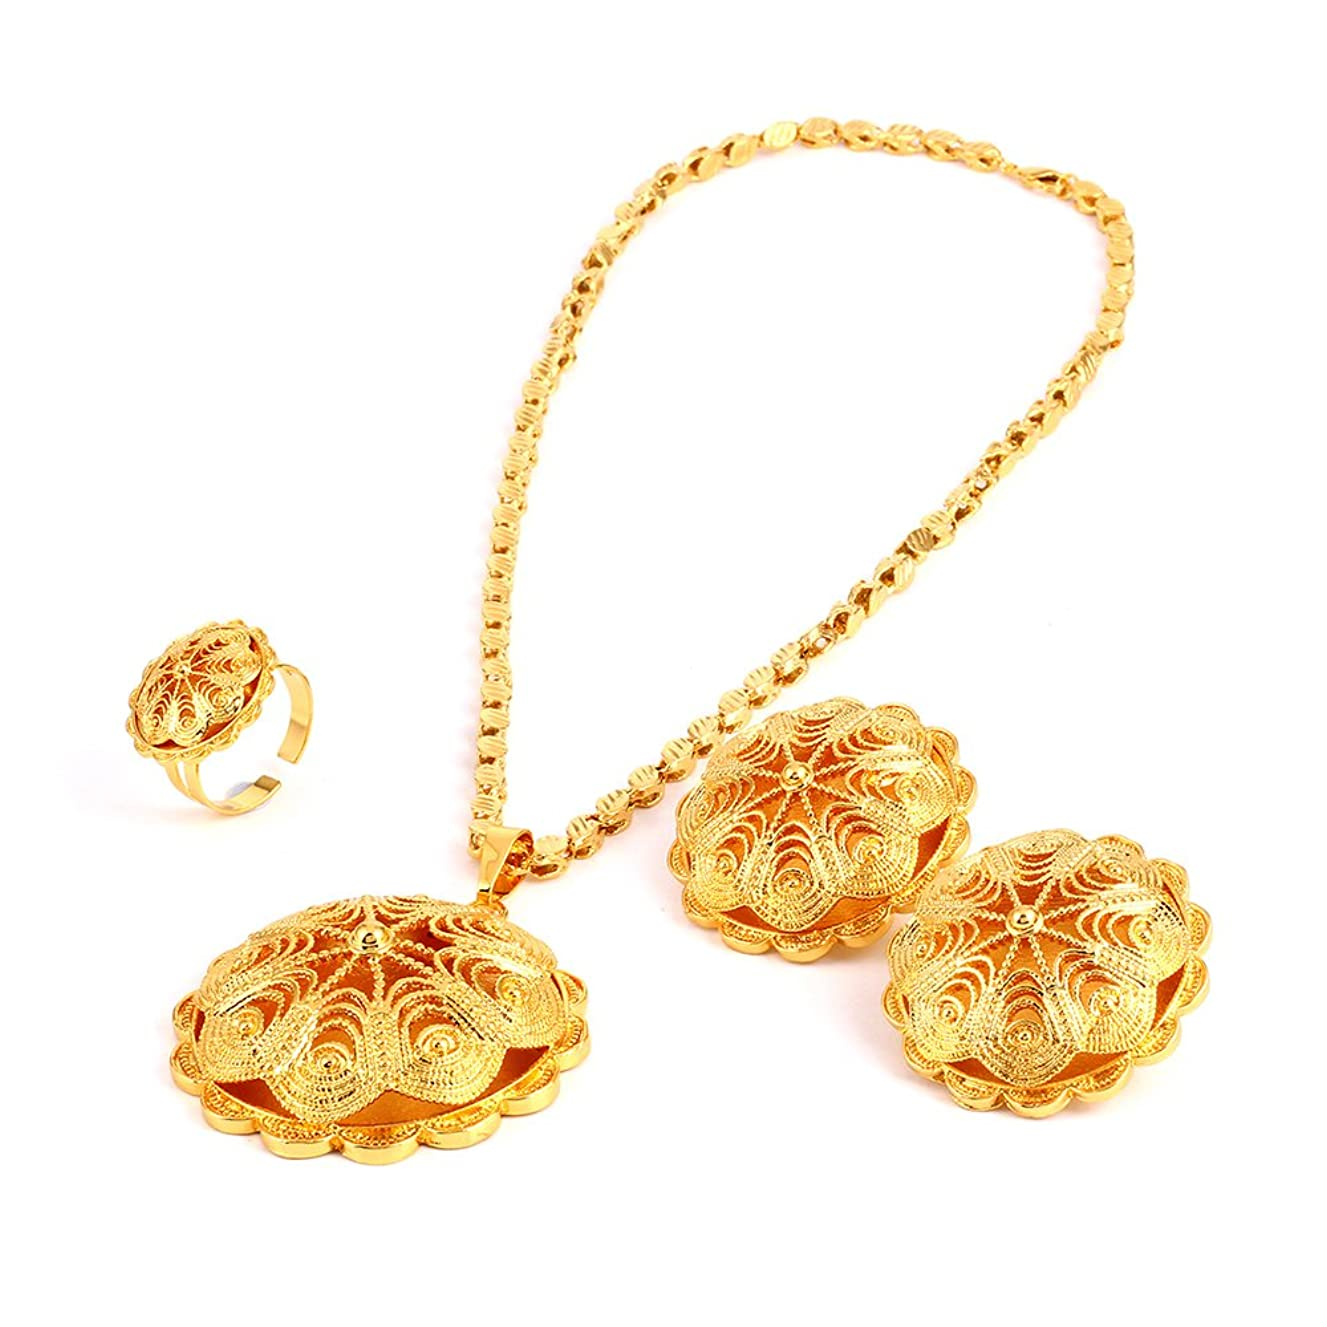 18K Gold Plated Big Size Jewelry Sets for Ethiopian Habesha Women Wedding Party Jewelry